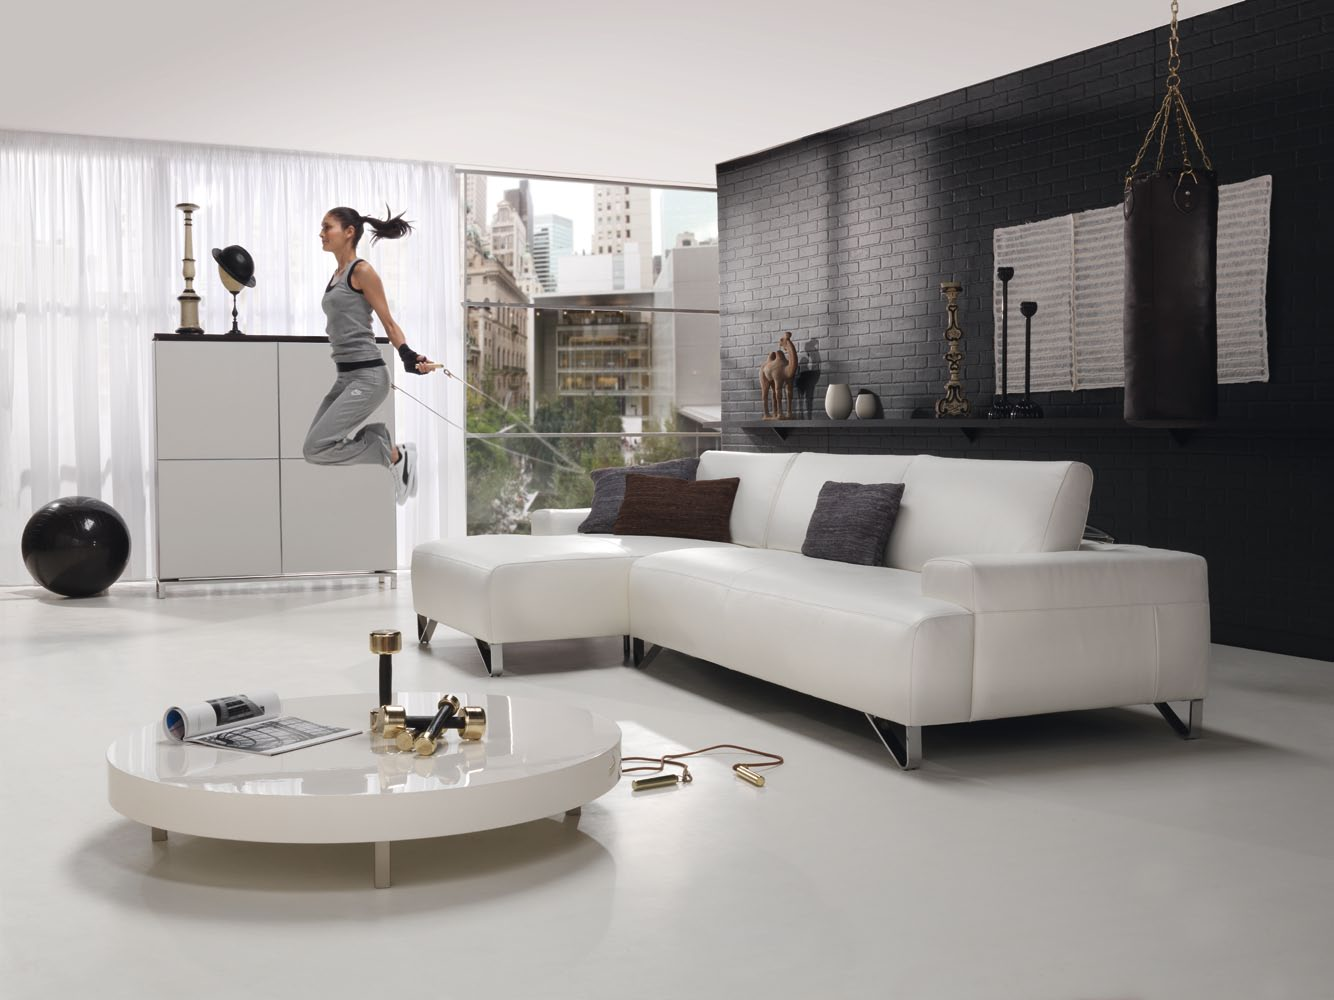 Modern Living Room With Black And White Brick Wall Plus Sofa Oval Coffee Table